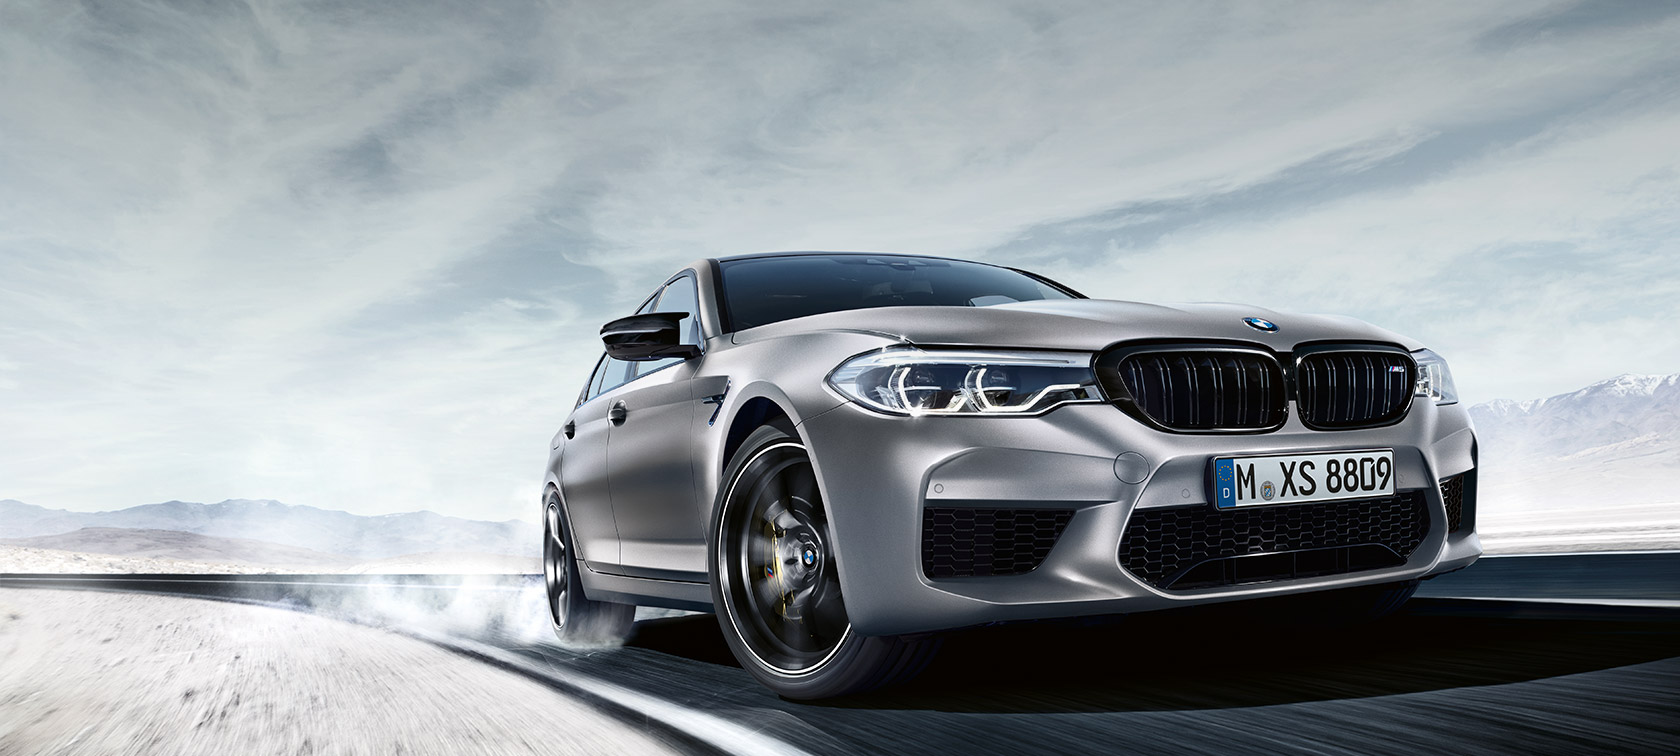 BMW M5 Competition, vista anteriore a tre quarti.